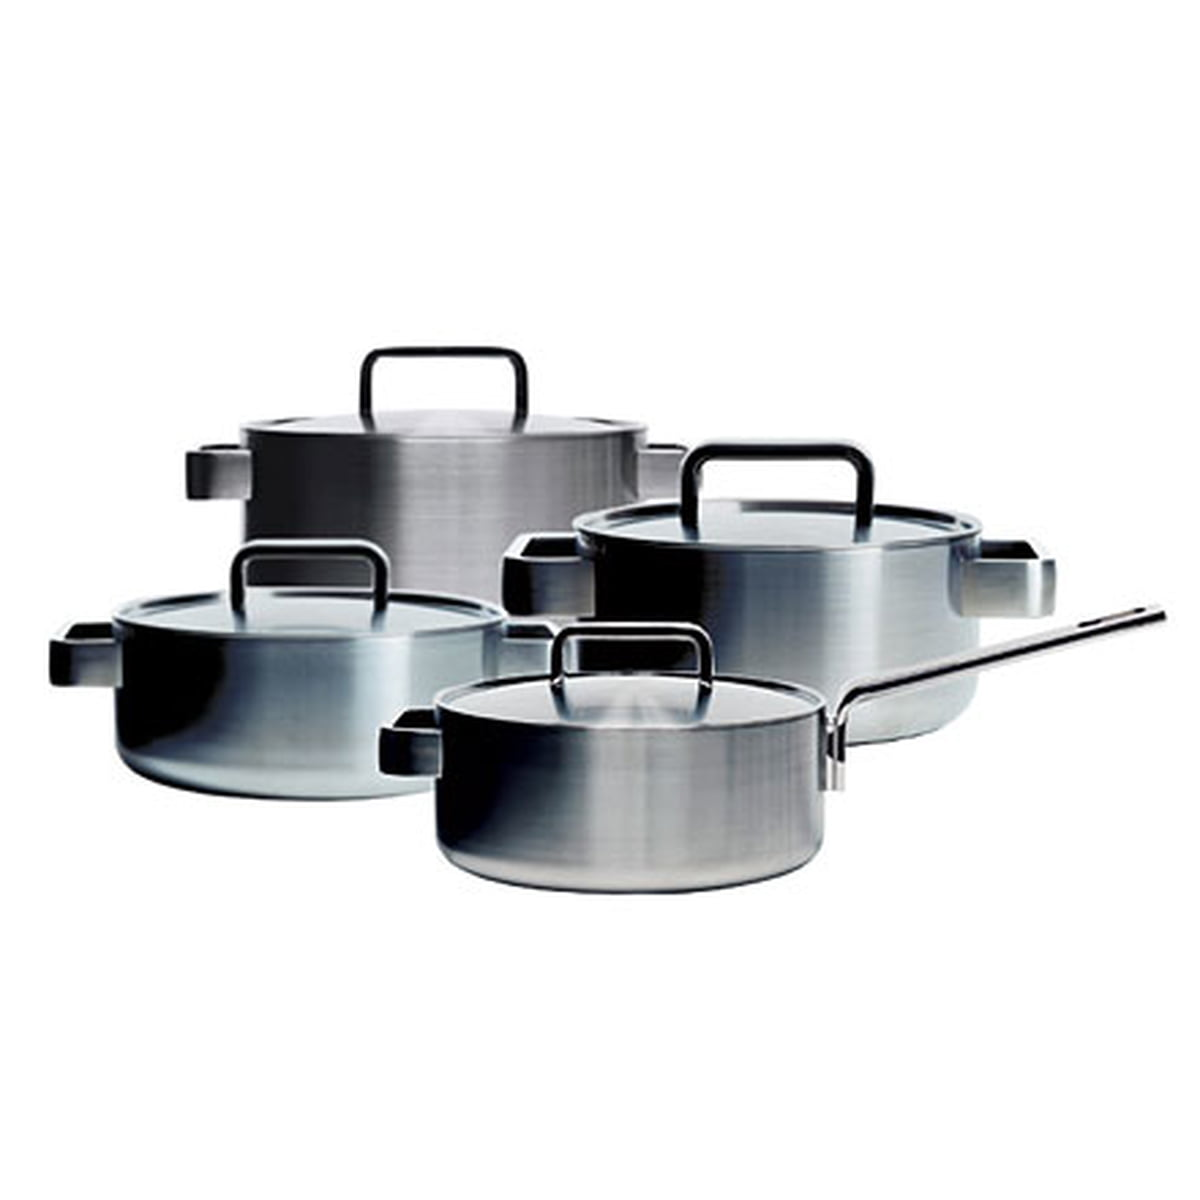 Tools Pots & Pans Set by Iittala | Connox Shop | {Töpfe 36}